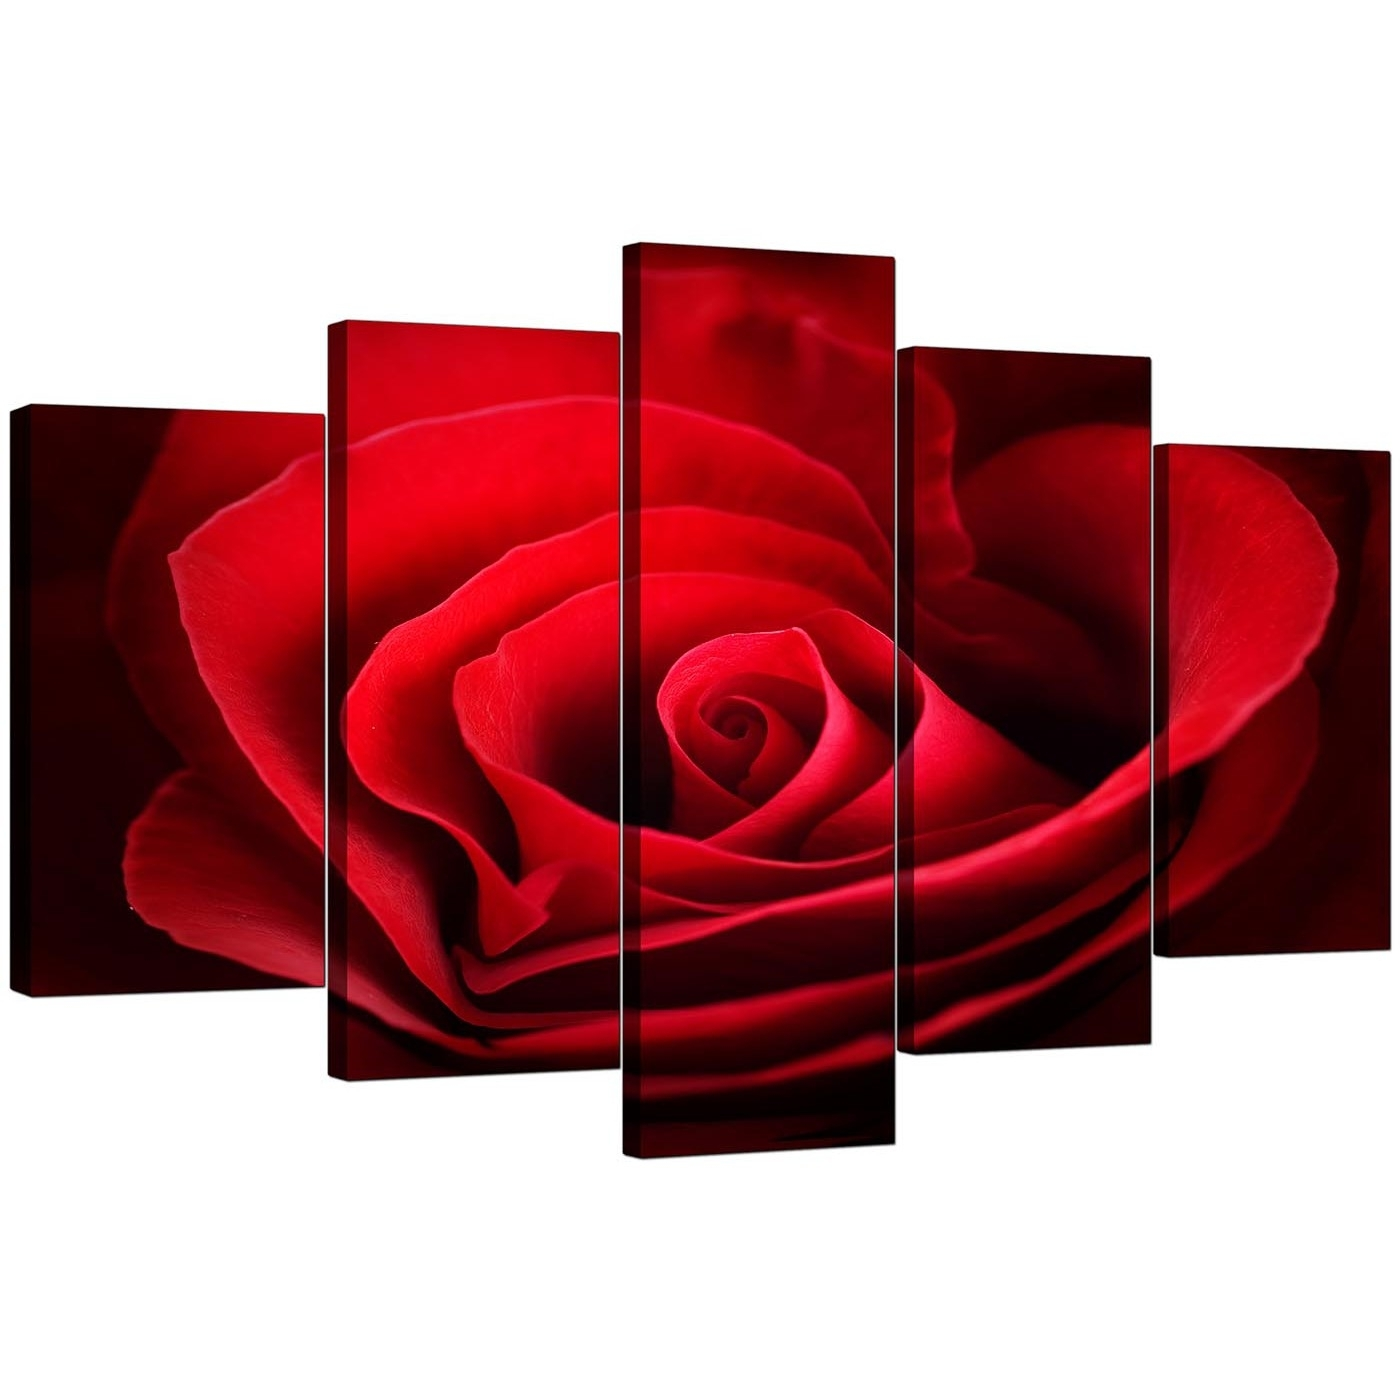 Extra Large Rose Canvas Wall Art 5 Panel In Red intended for Red Canvas Wall Art (Image 12 of 20)